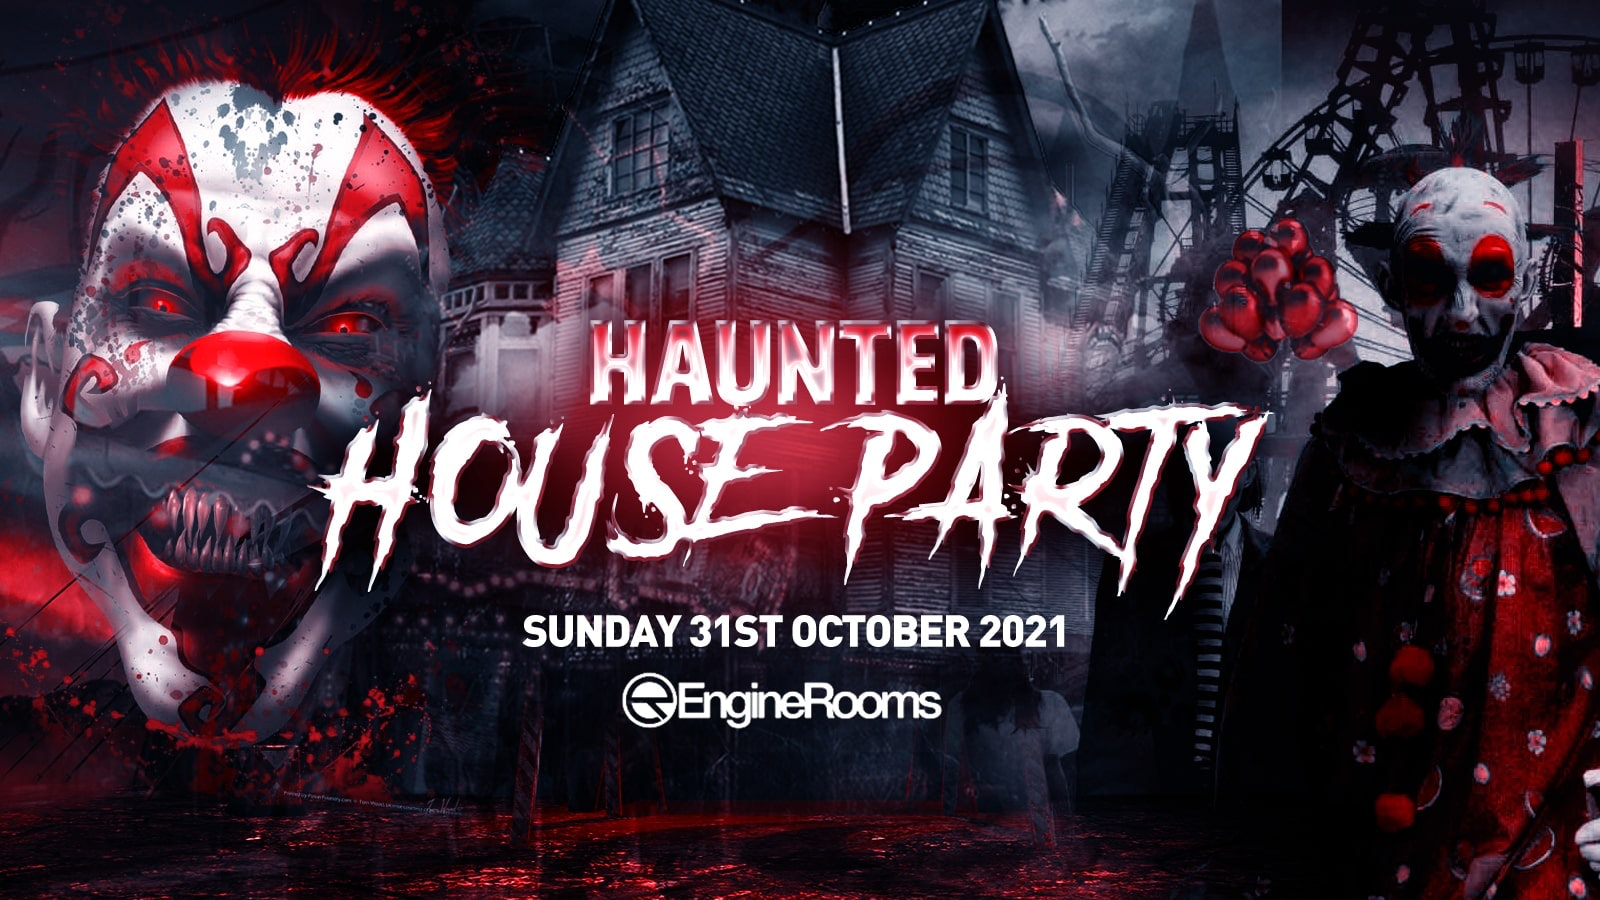 The Haunted House Party | Southampton Halloween 2021 – £5 Tickets SOLD OUT!